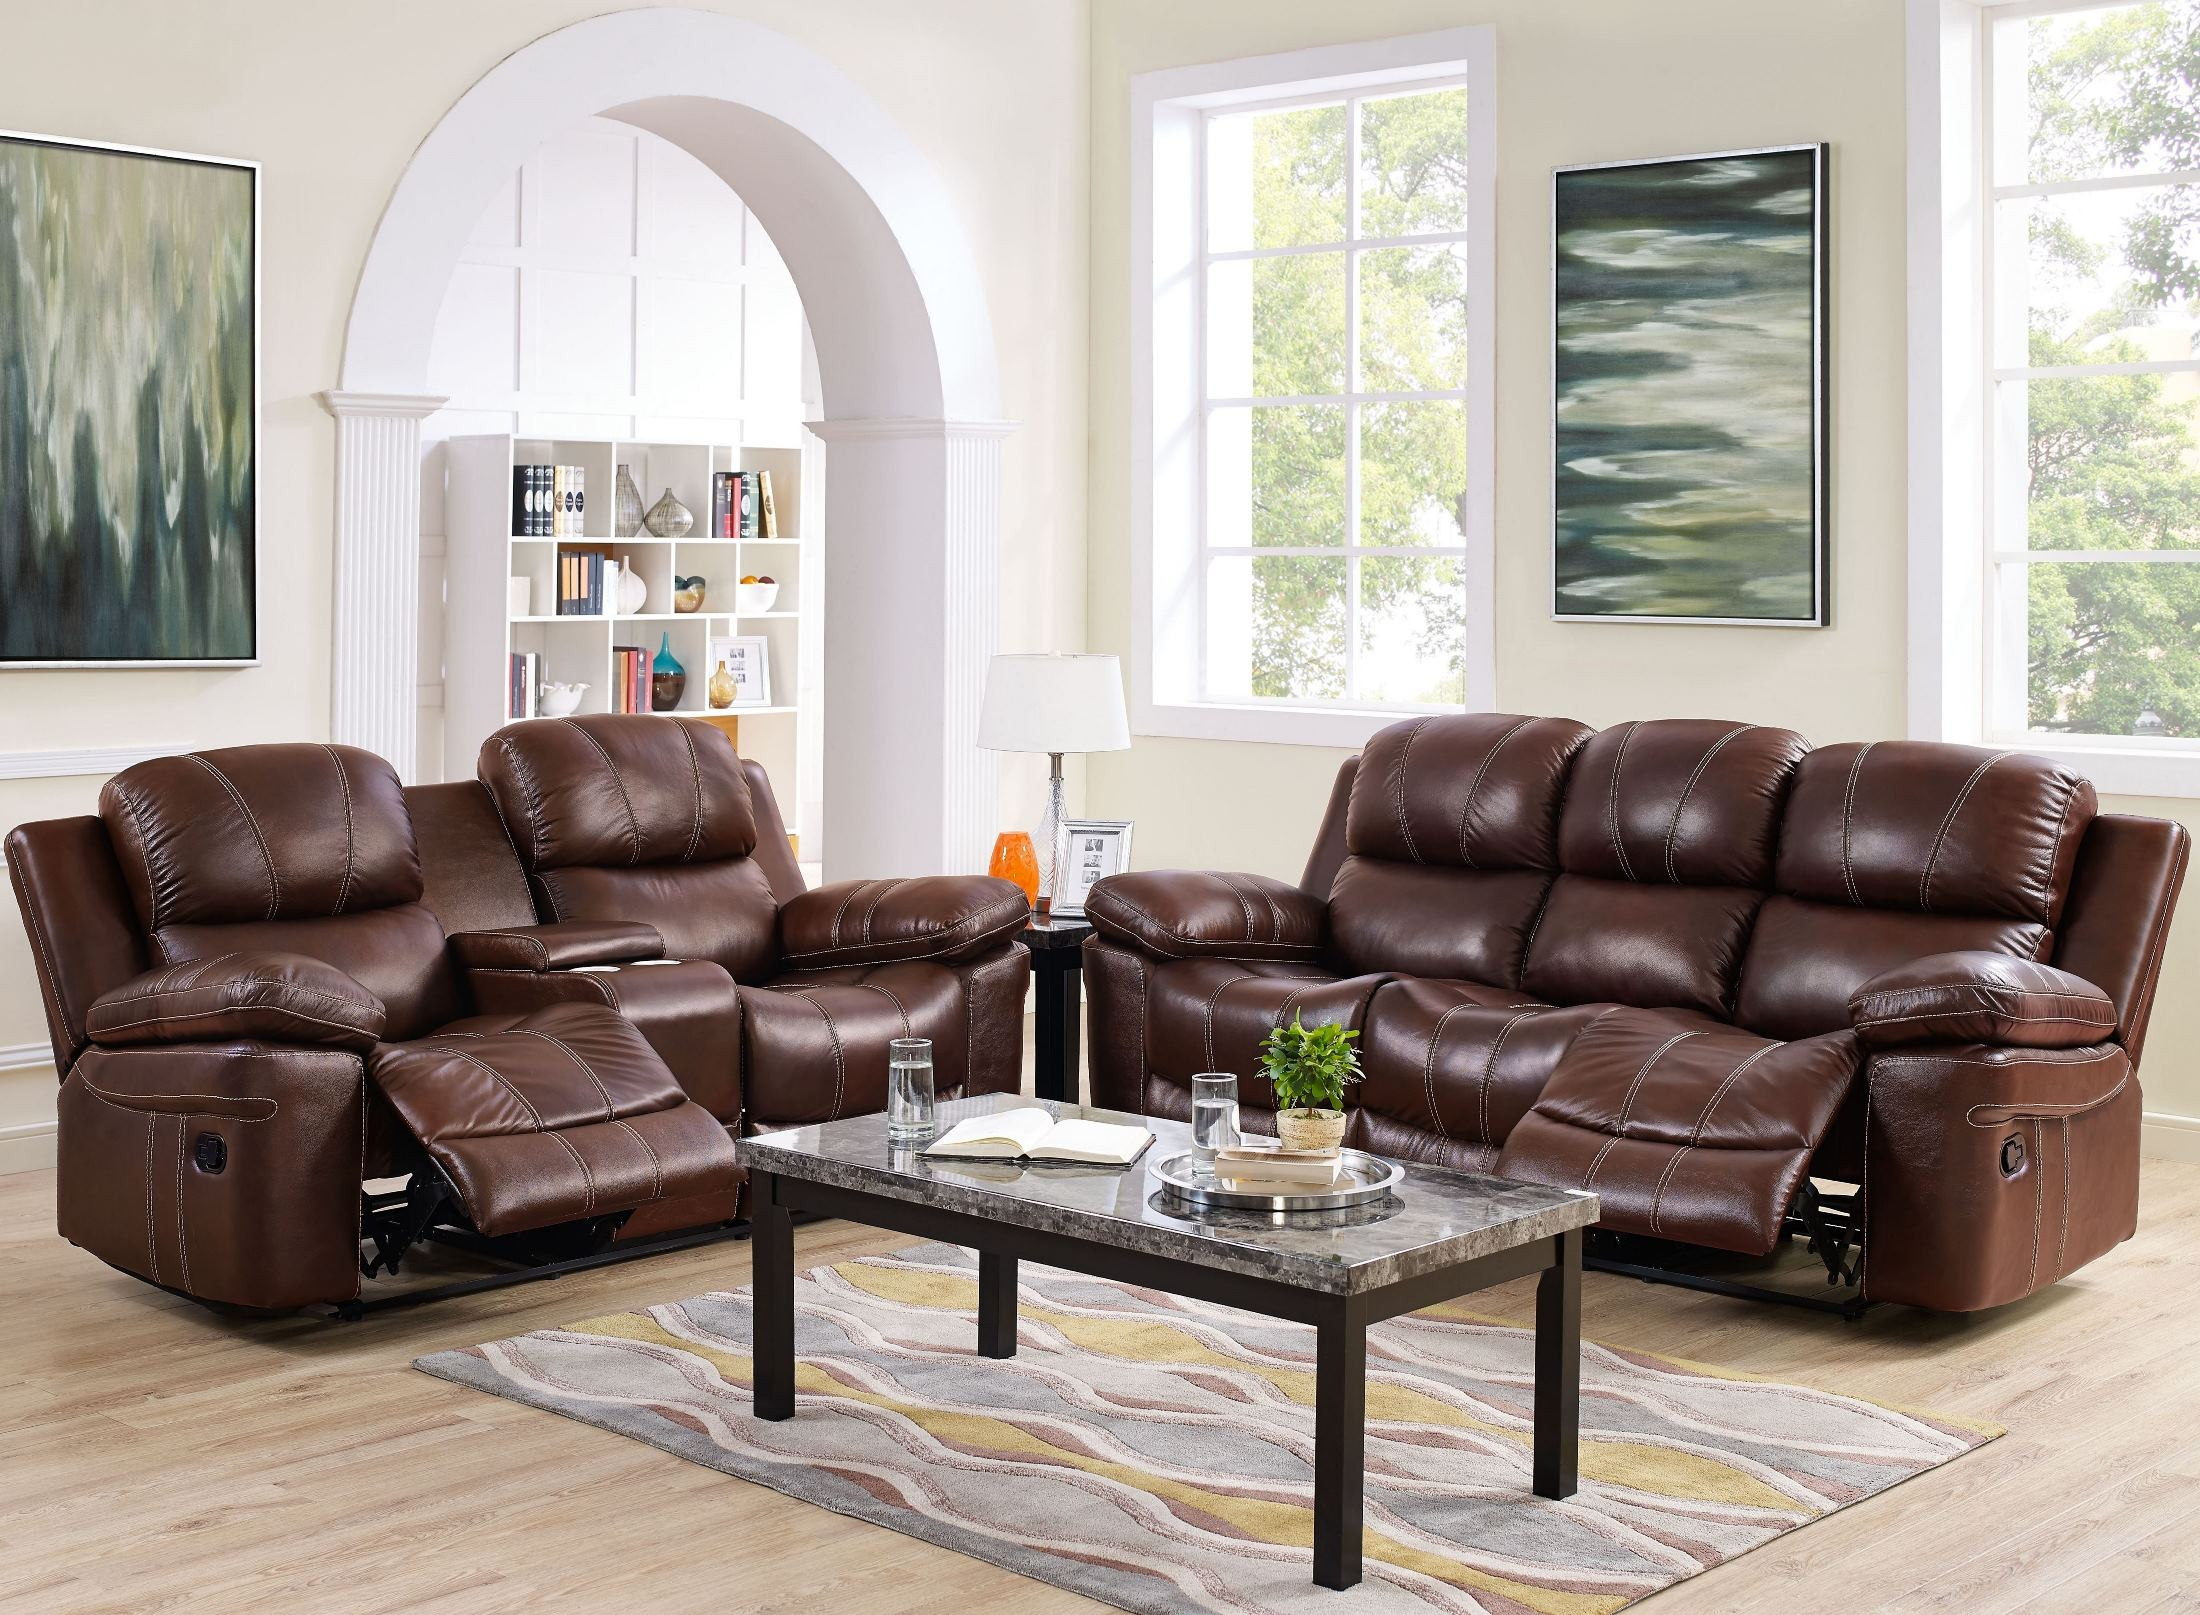 Legato Light Brown Power Reclining Living Room Set L8208 30P LBN New Classics